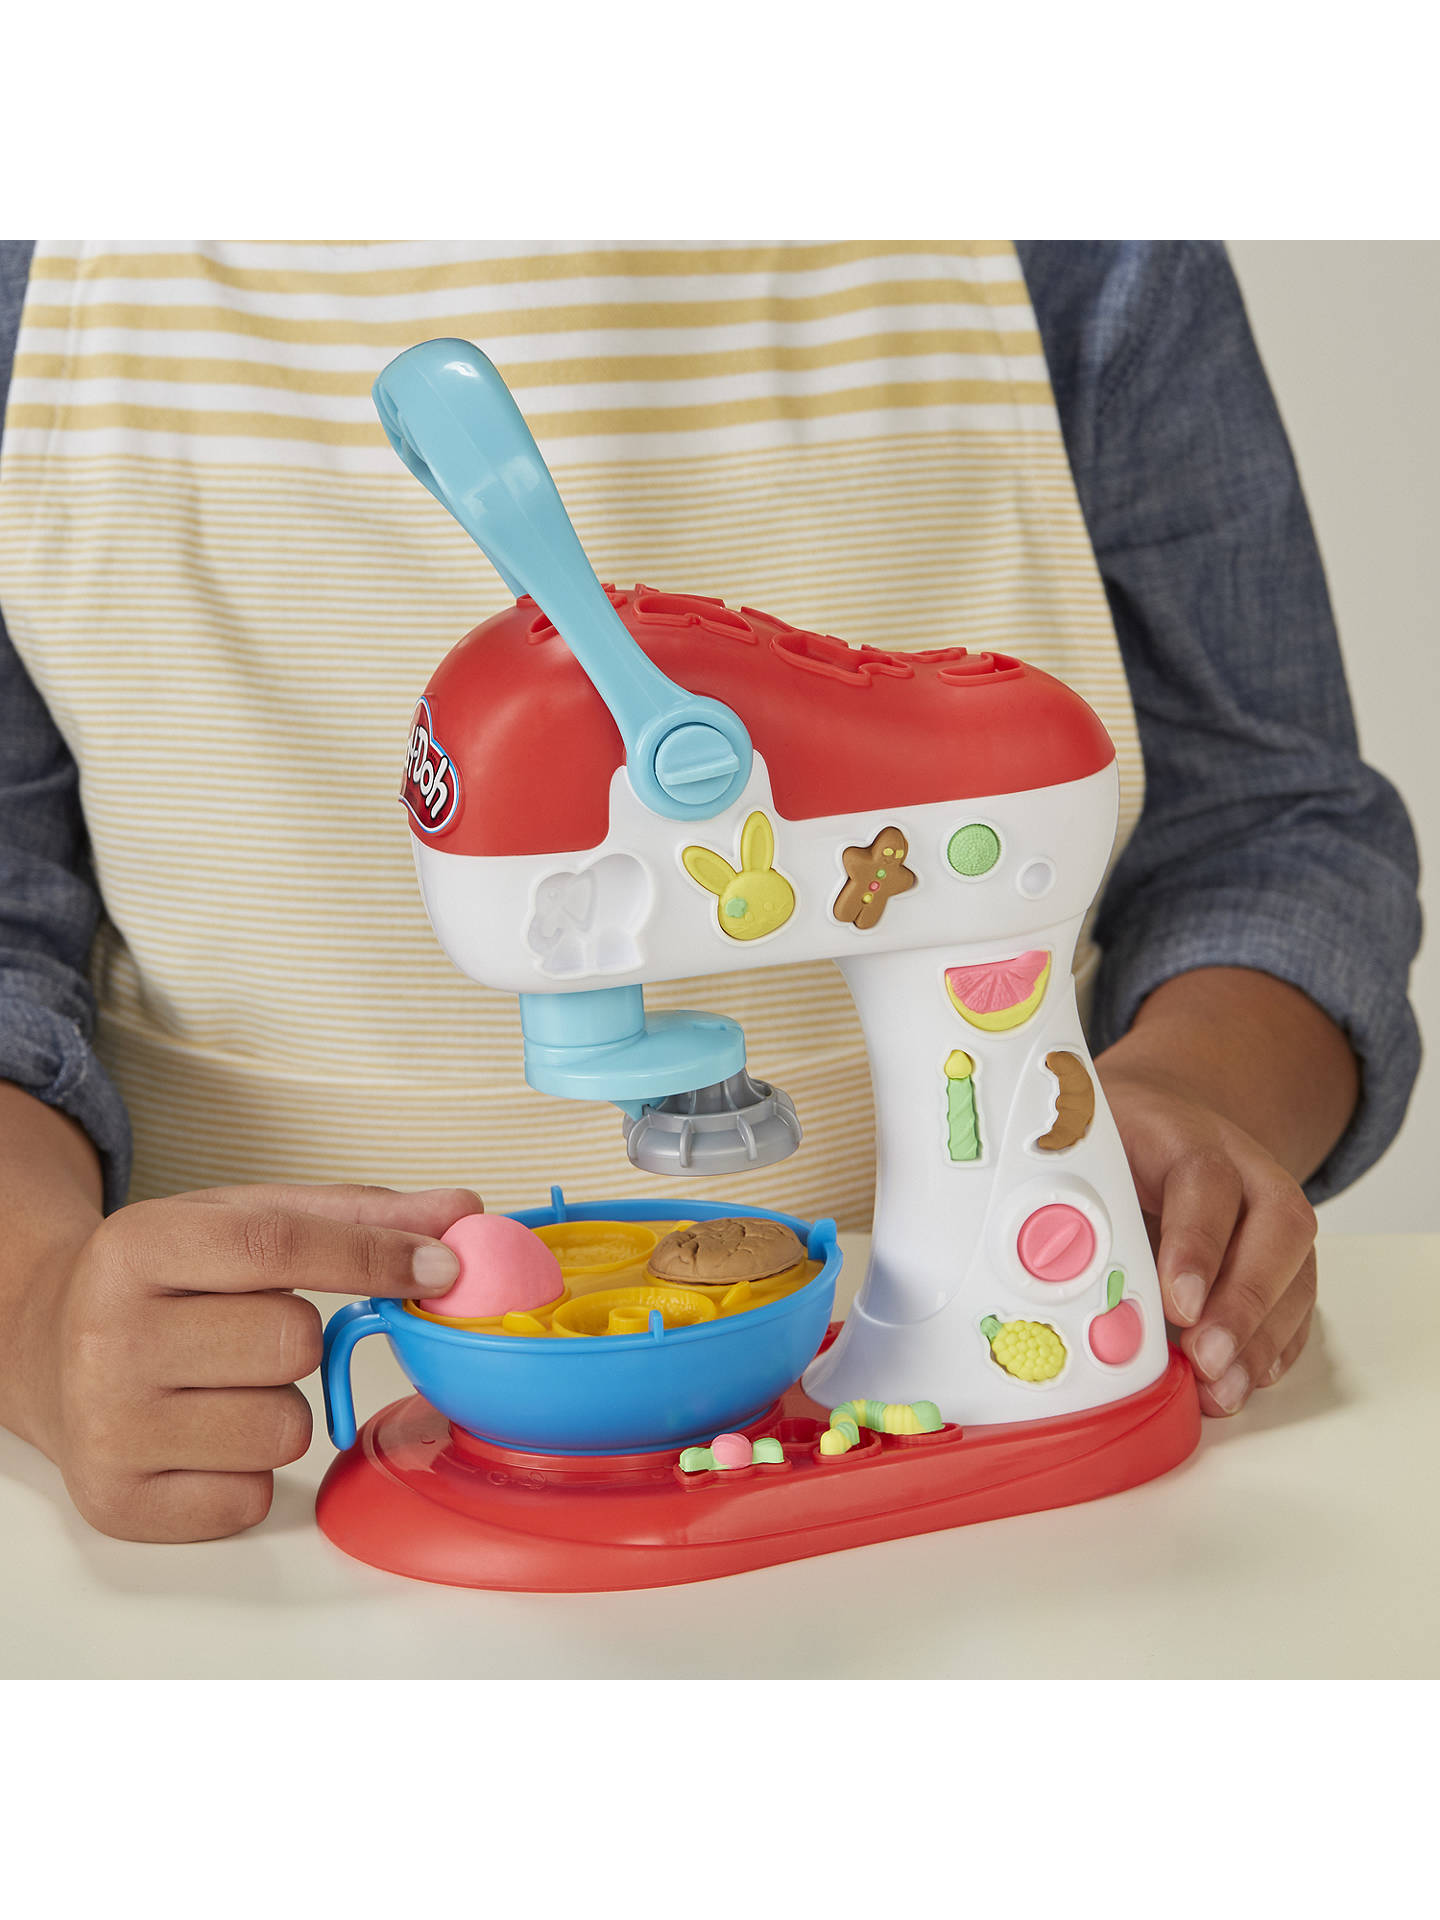 Buy Play-Doh Kitchen Creations Spinning Treats Mixer Online at johnlewis.com